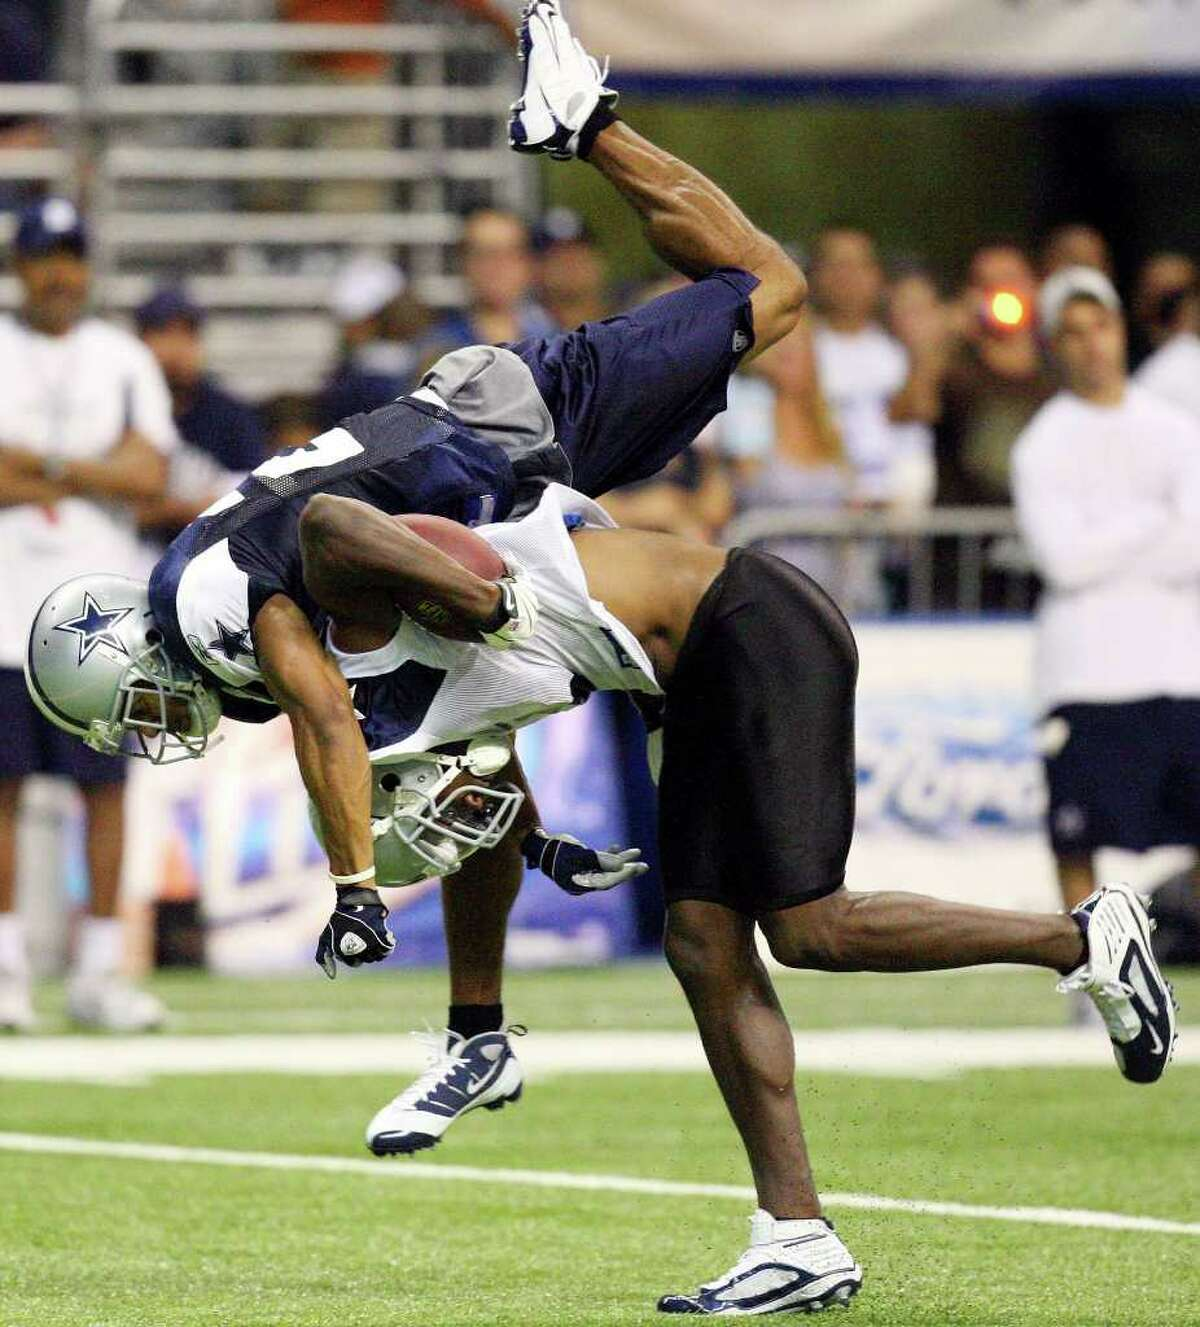 Dallas Cowboys' wide receiver Roy Williams flips Dallas Cowboys' safety Courtney Brown off his back on a pass play during NFL football training camp on Sunday, Aug. 9, 2009 at the Alamodome in San Antonio, Texas. (AP Photo/San Antonio Express-News, Edward A. Ornelas) **RUMBO DE SAN ANTONIO OUT**